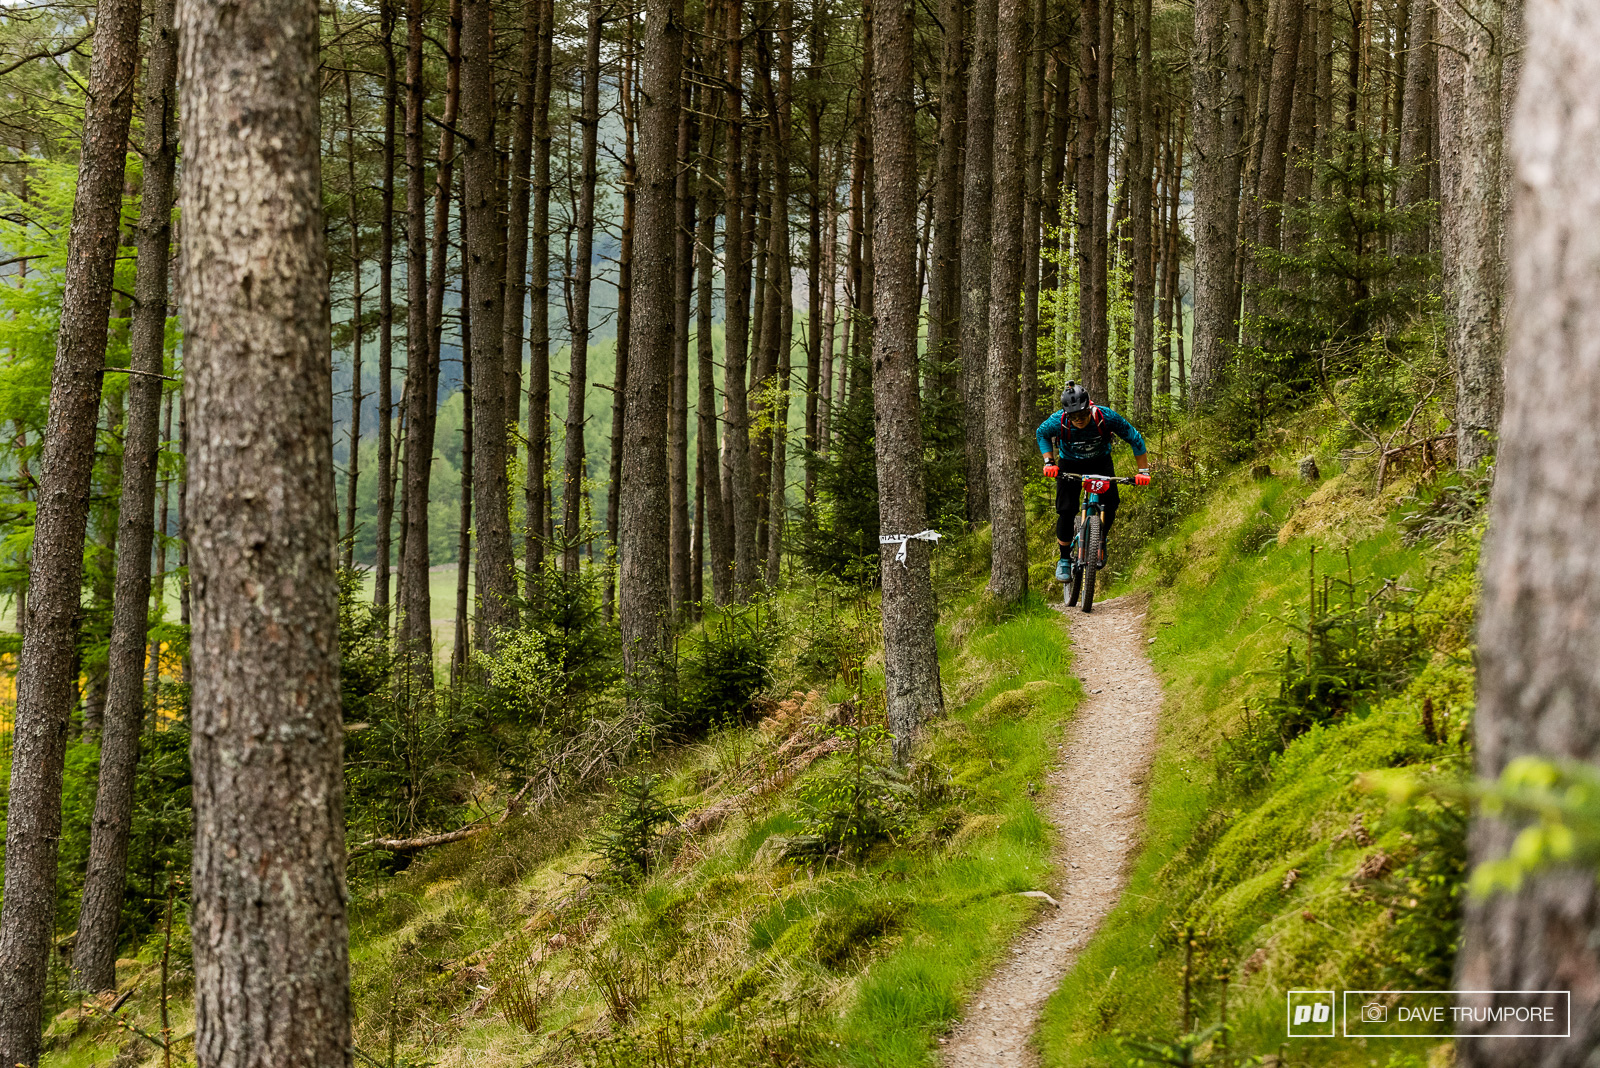 After a 3rd last week in Ireland Richie Rude is hungry to add an EWS win to his already impressive list of racing accomplishments.